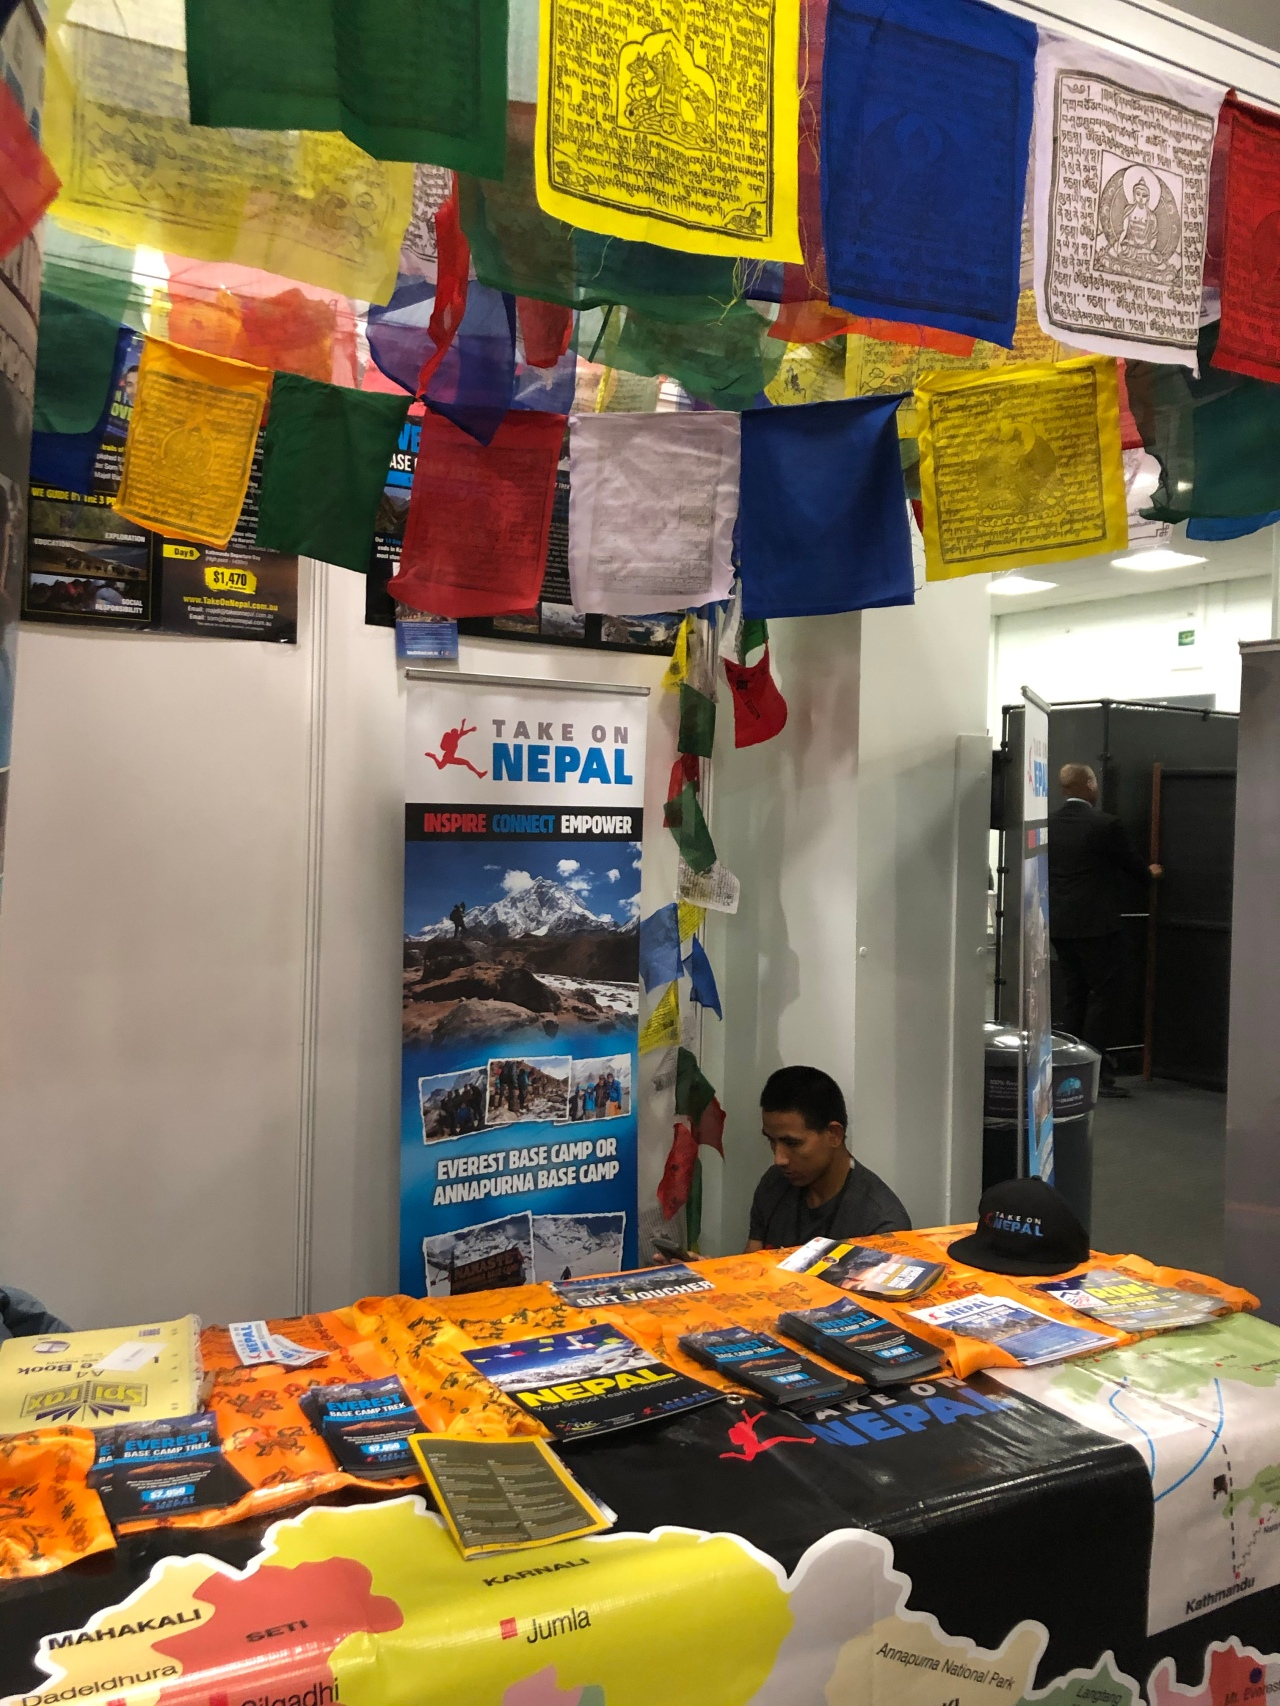 Adventure travel show Nepal stand